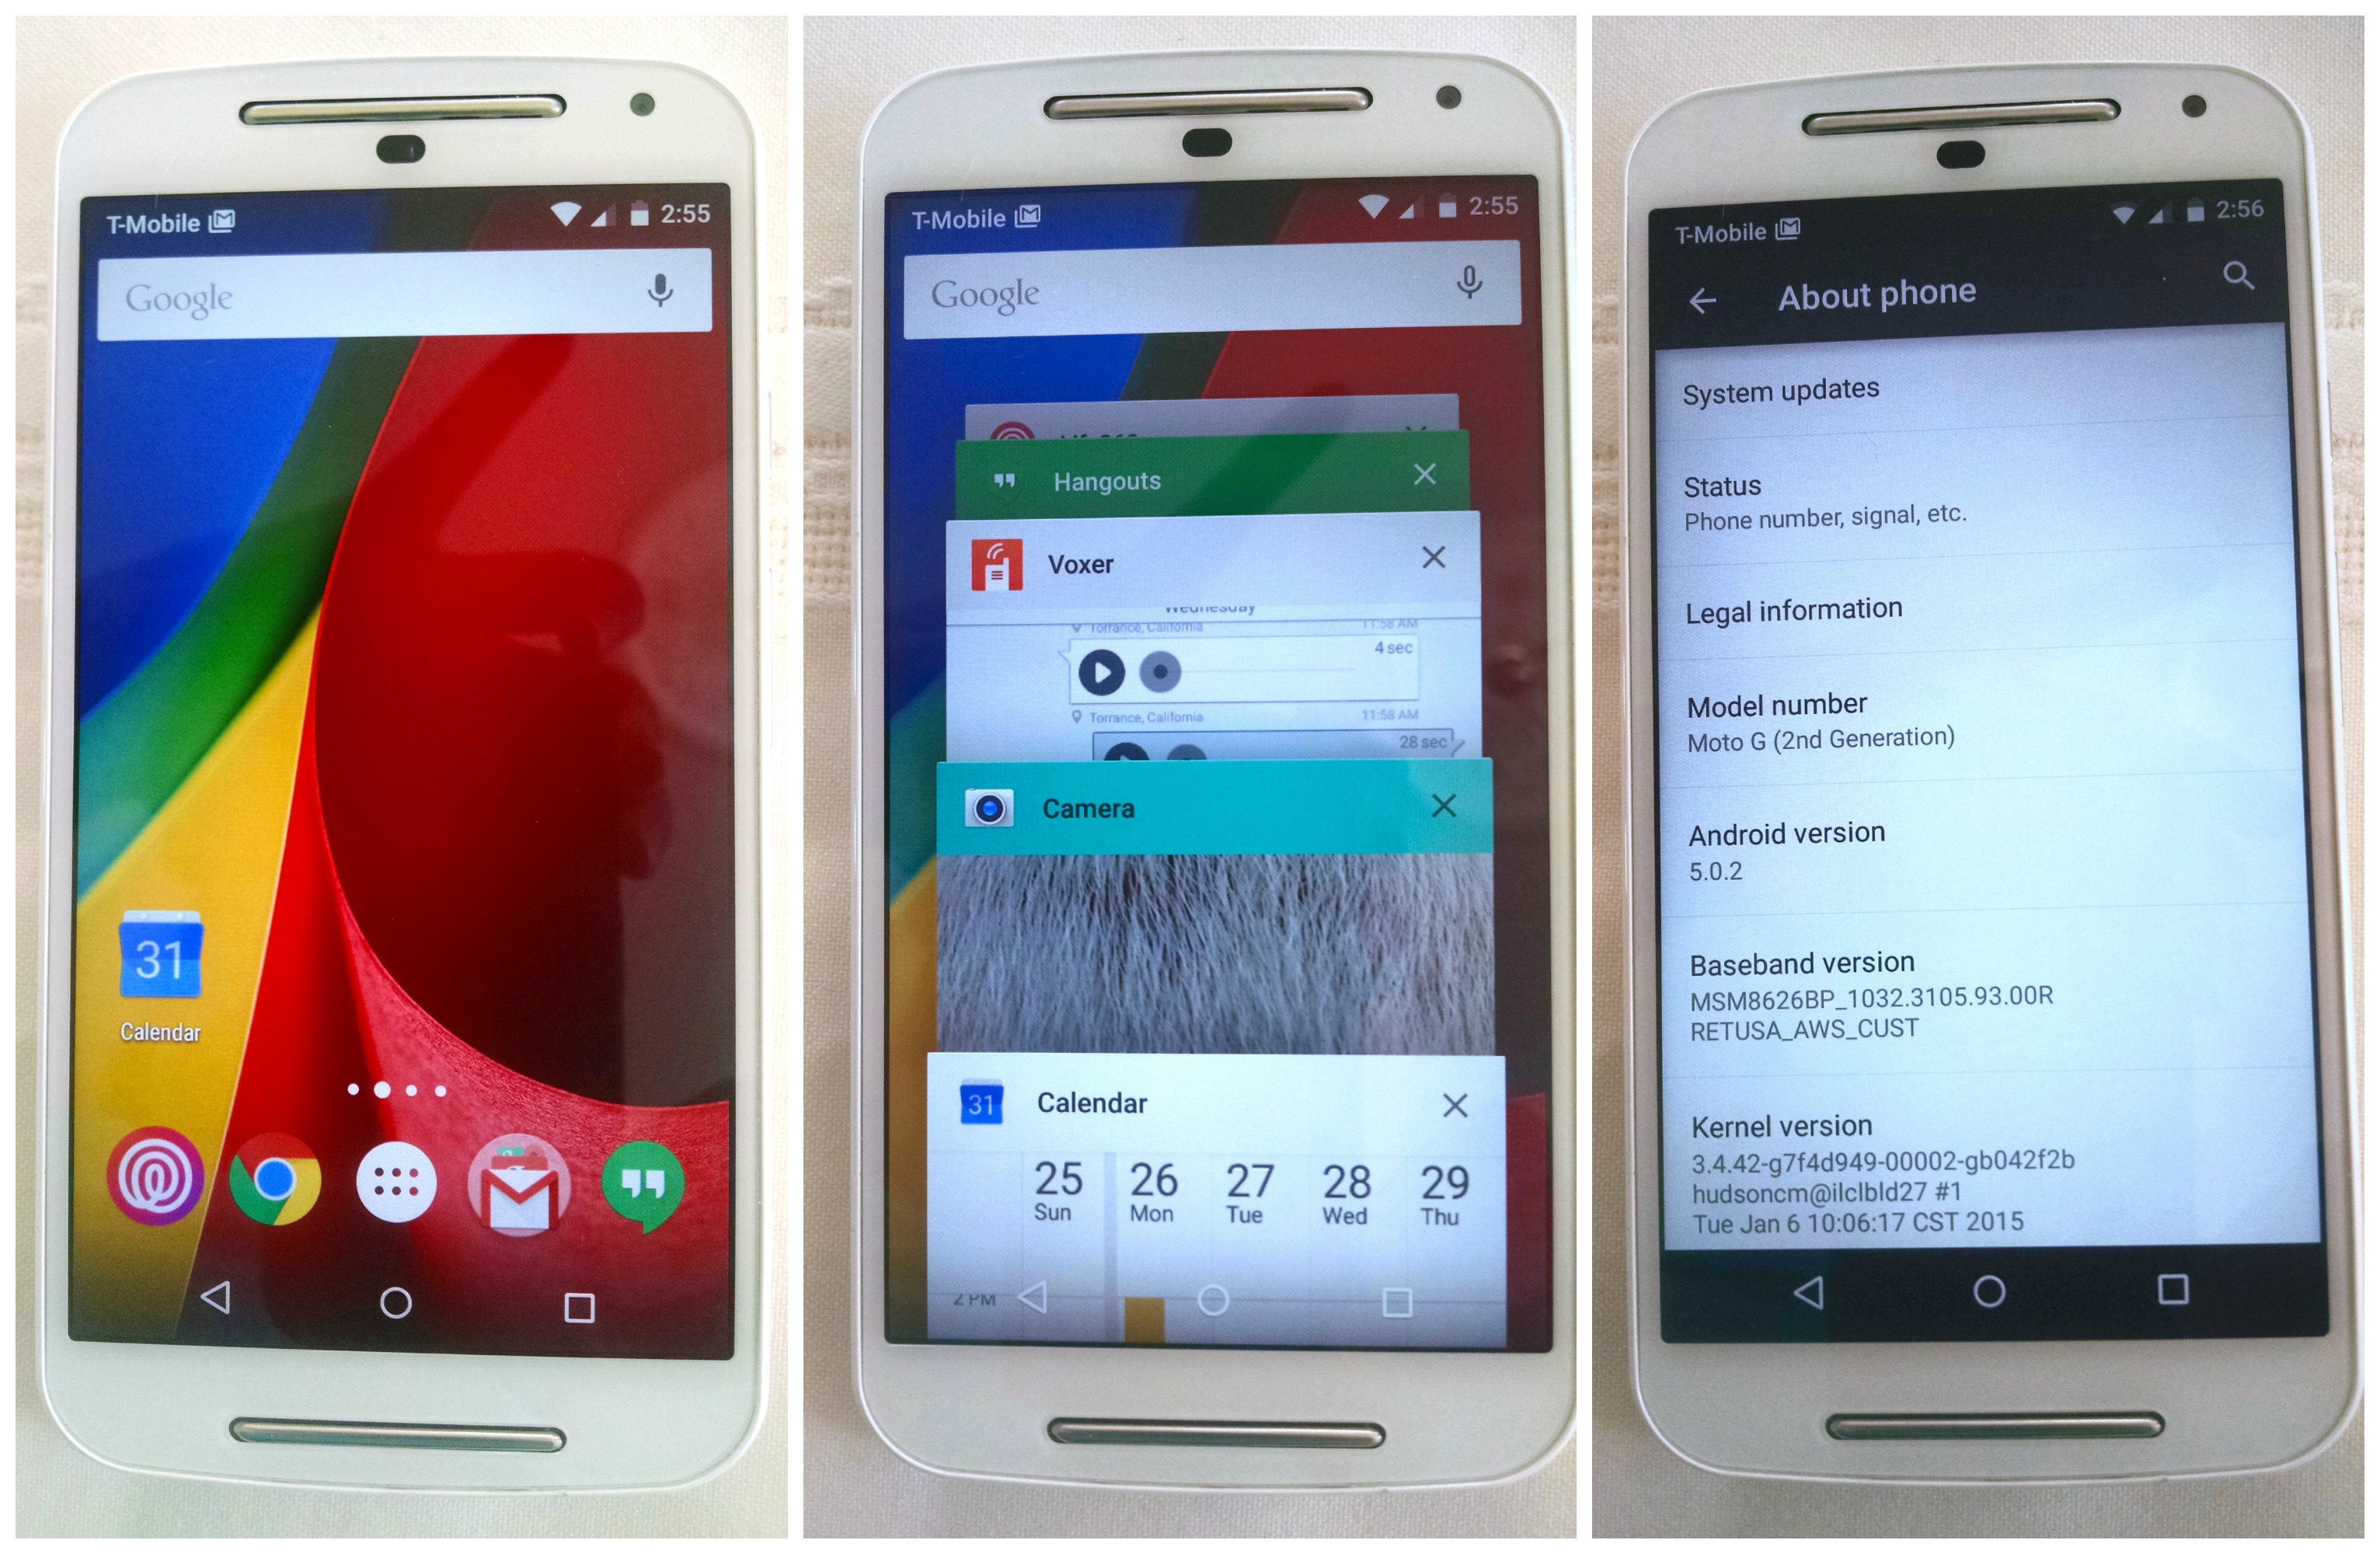 Camera Android 5 Phone android 5 0 2 lollipop is rolling out to moto g 2nd gen in the us 2014 collage